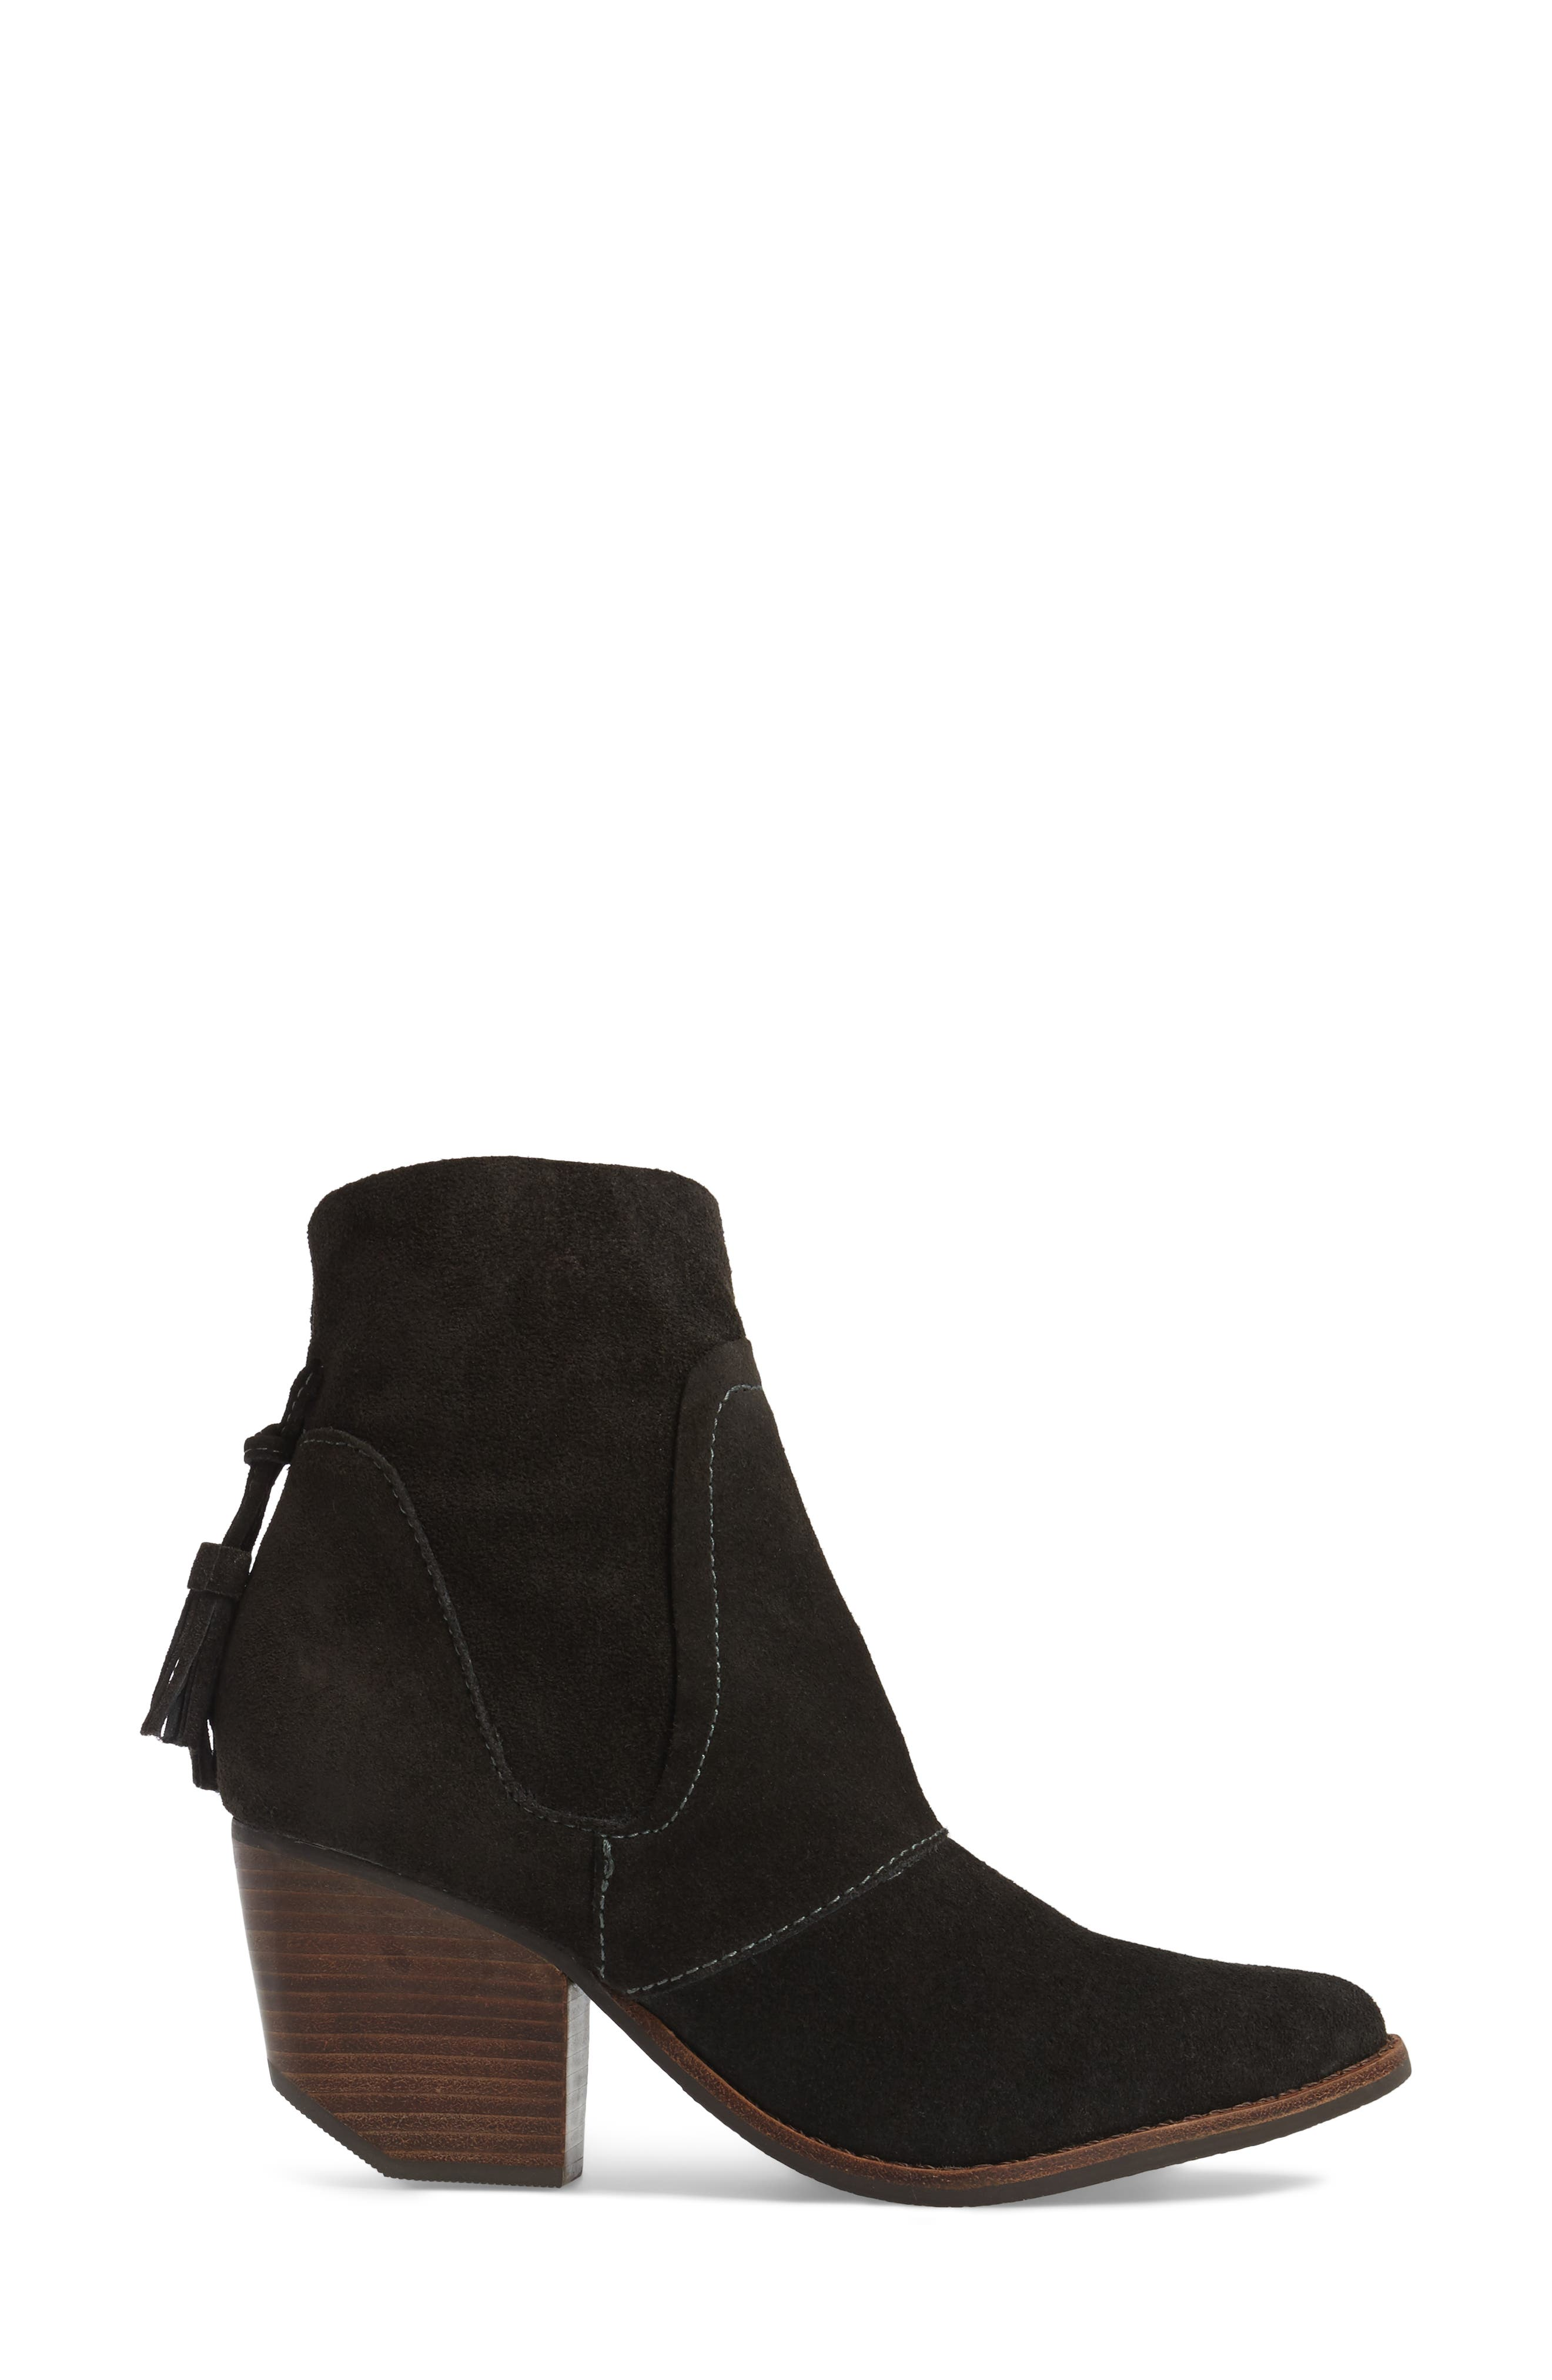 Laney Notched Heel Bootie,                             Alternate thumbnail 3, color,                             Forest Suede